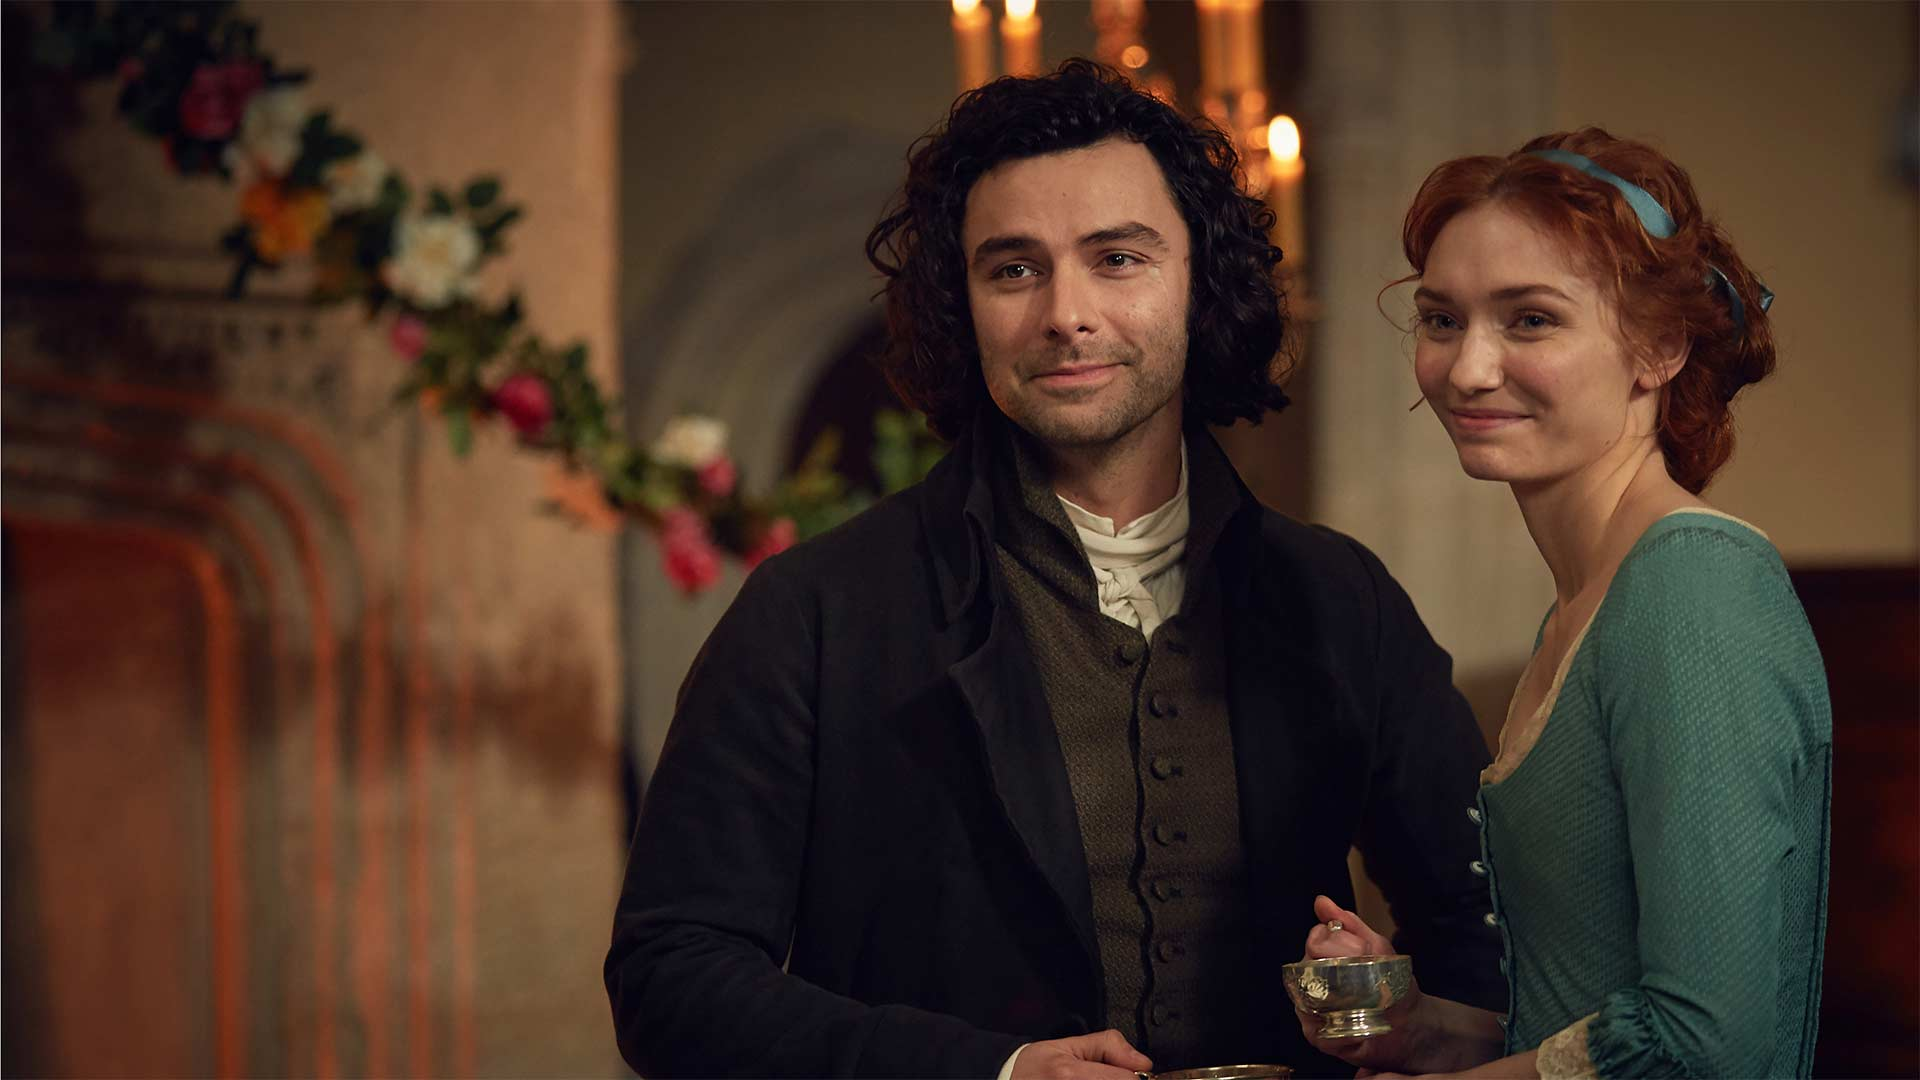 Aidan Turner as Ross Poldark and Eleanor Tomlinson as Demelza Poldark